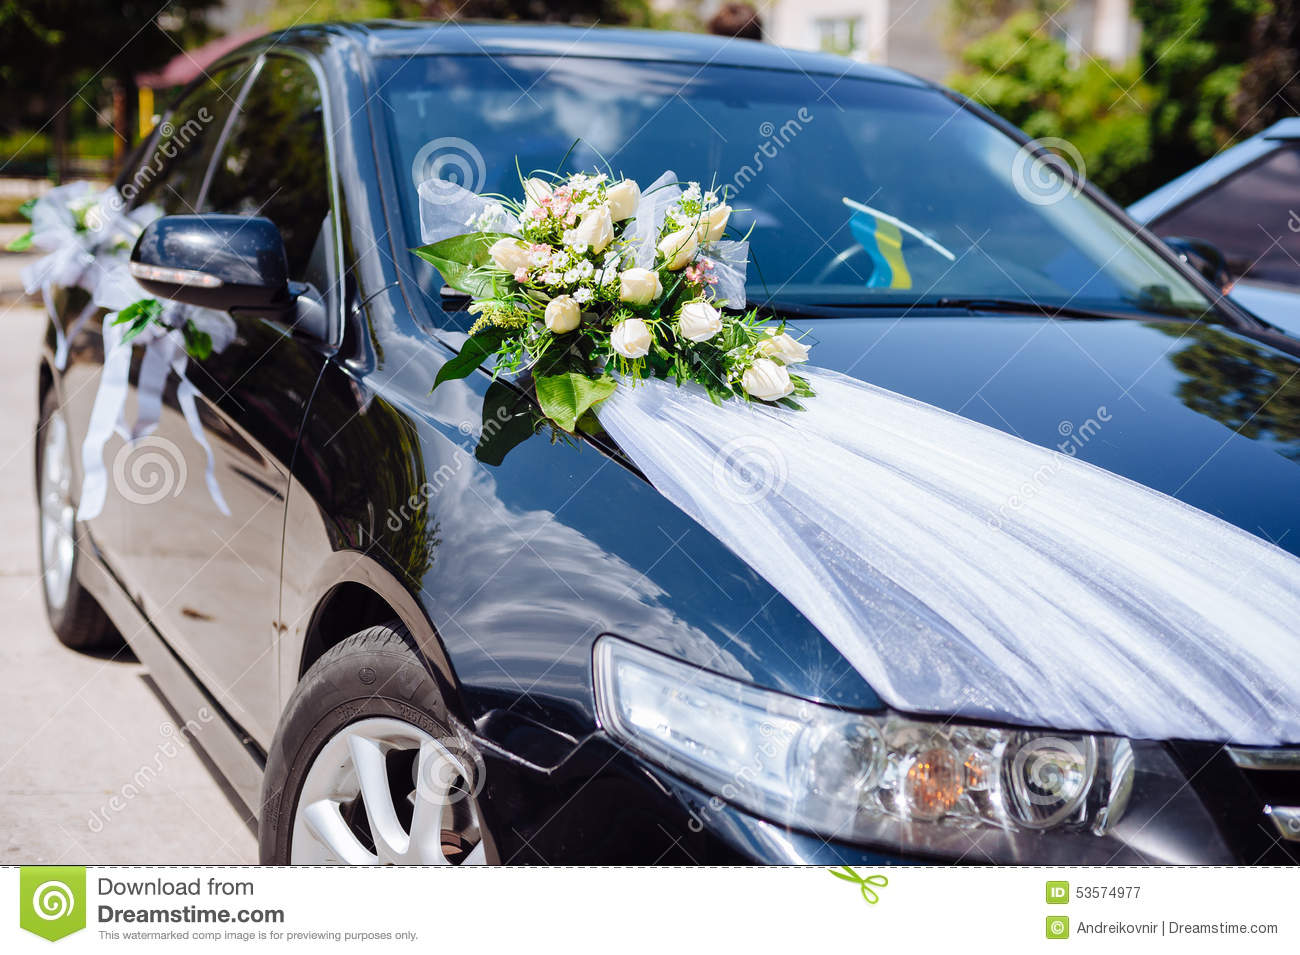 Best car decorations for wedding contemporary styles ideas 2018 wedding car decor flowers bouquet car decoration stock image junglespirit Image collections